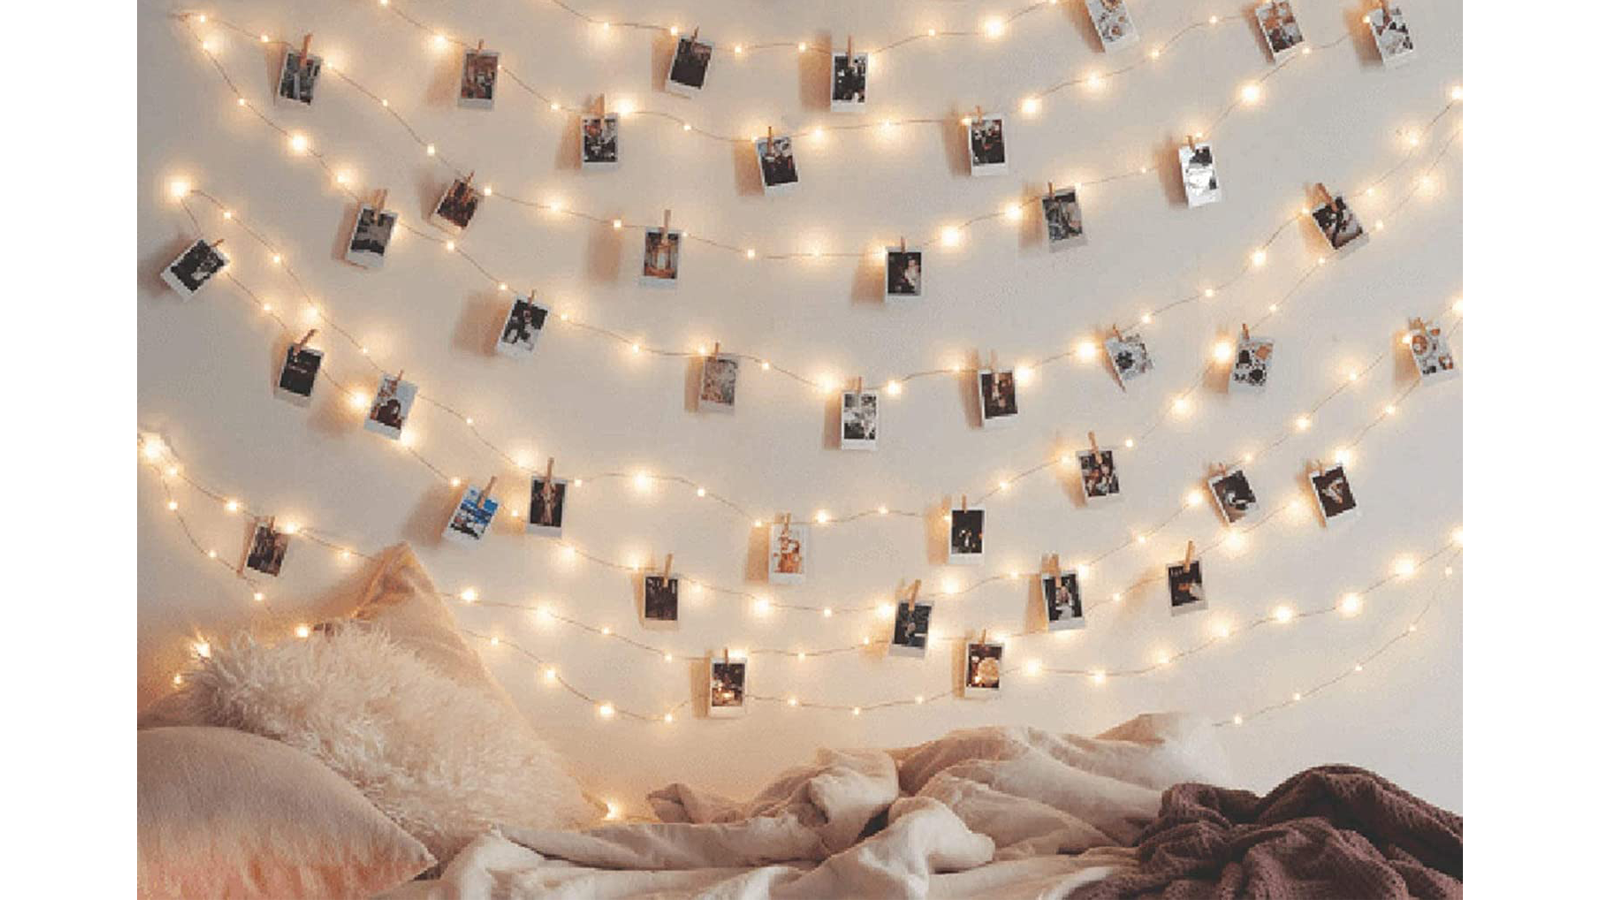 Light Up Your Home or Venue with These Pretty Fairy String Lights